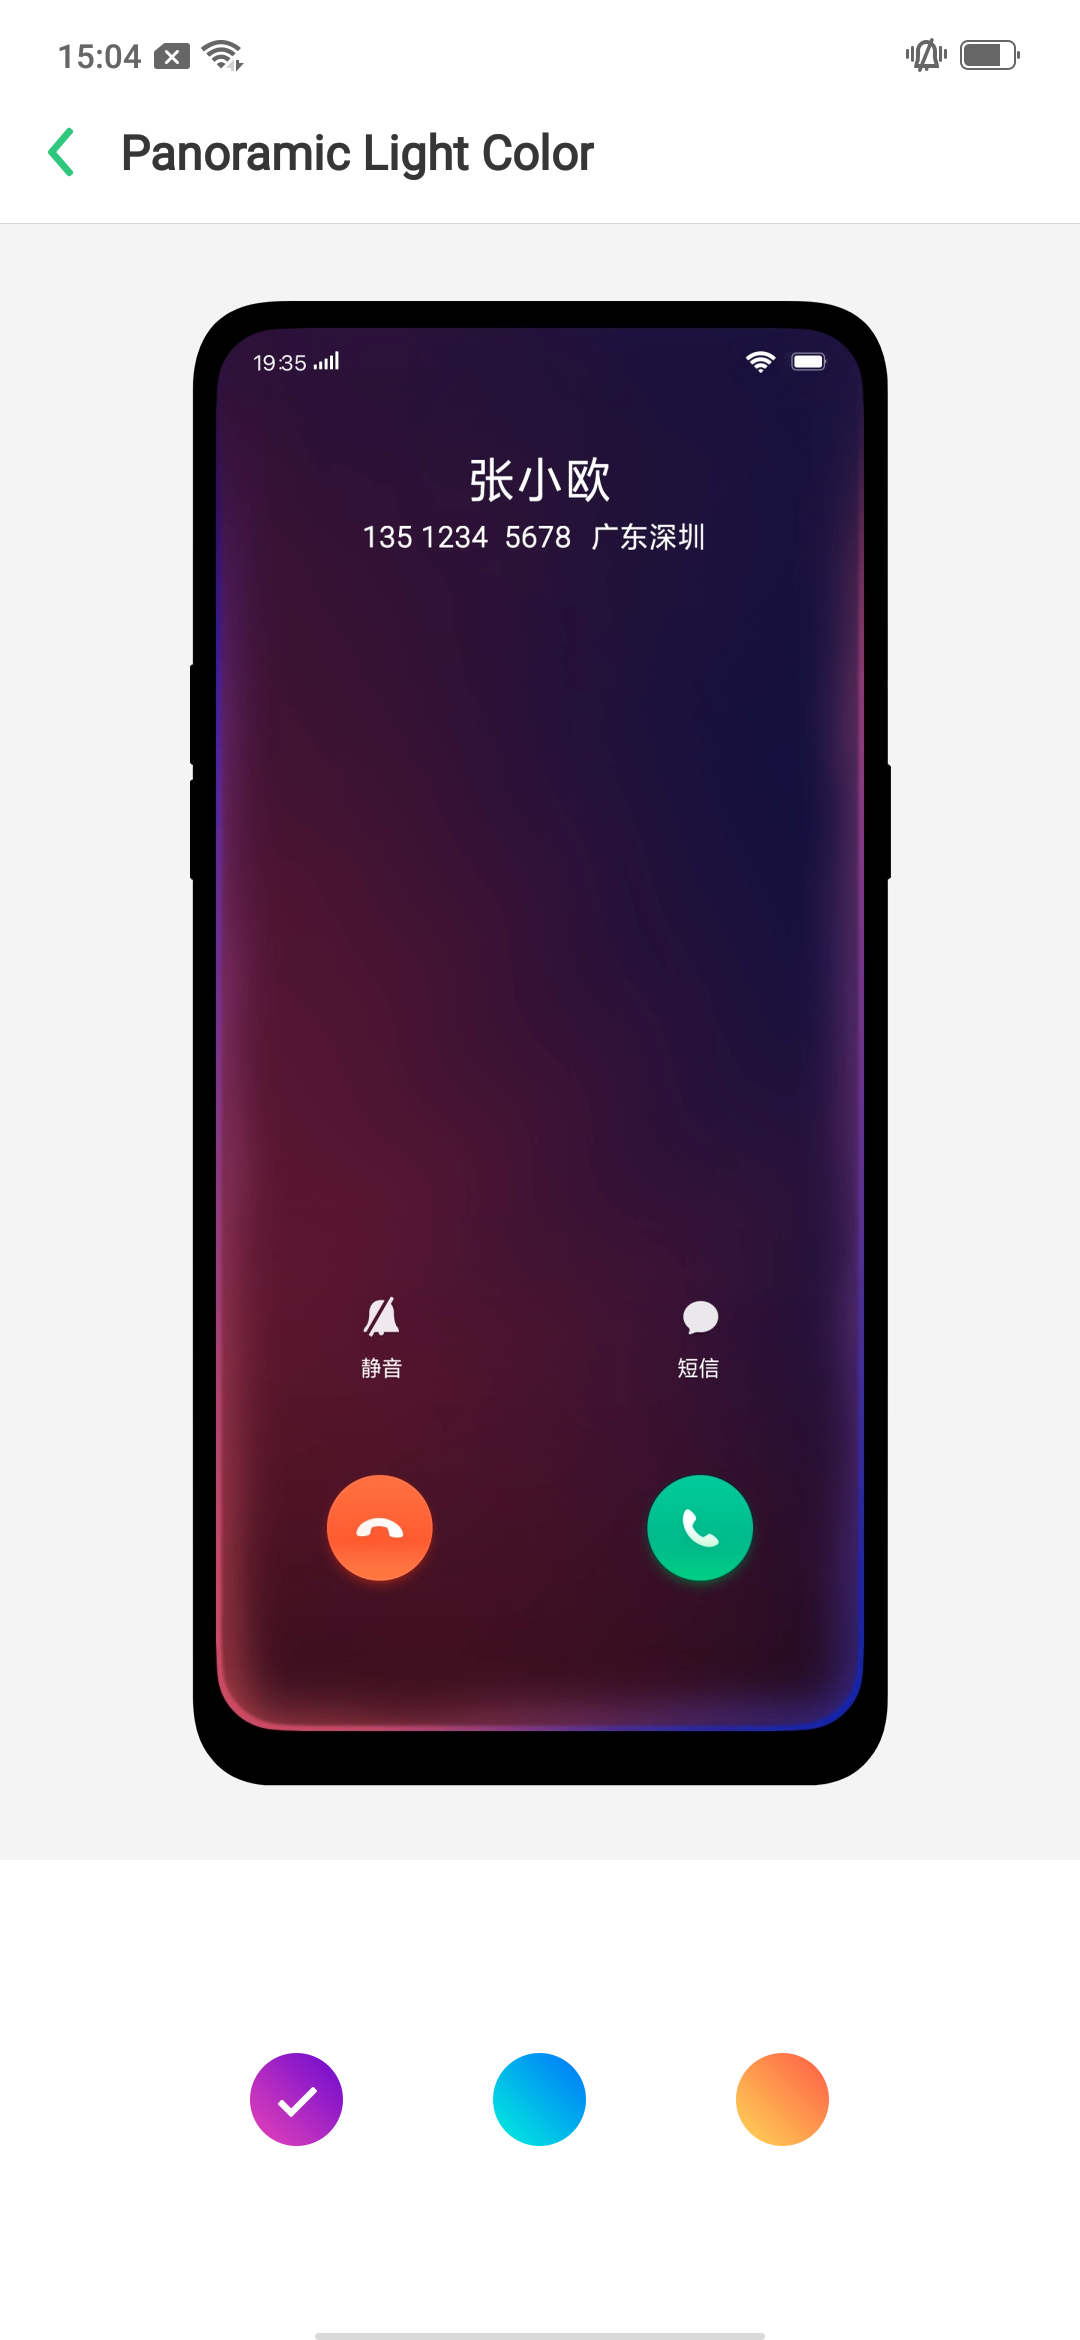 Display Audio Software Oppo Find X Review The Most Interesting Headset Bluetooth Professional Samsung Sony Asus Xiaomi Lenovo Vivo Theres An Always On Option For Phone But Its Off By Default And Buried In Settings Menu To Turn It Enable Screen Clock